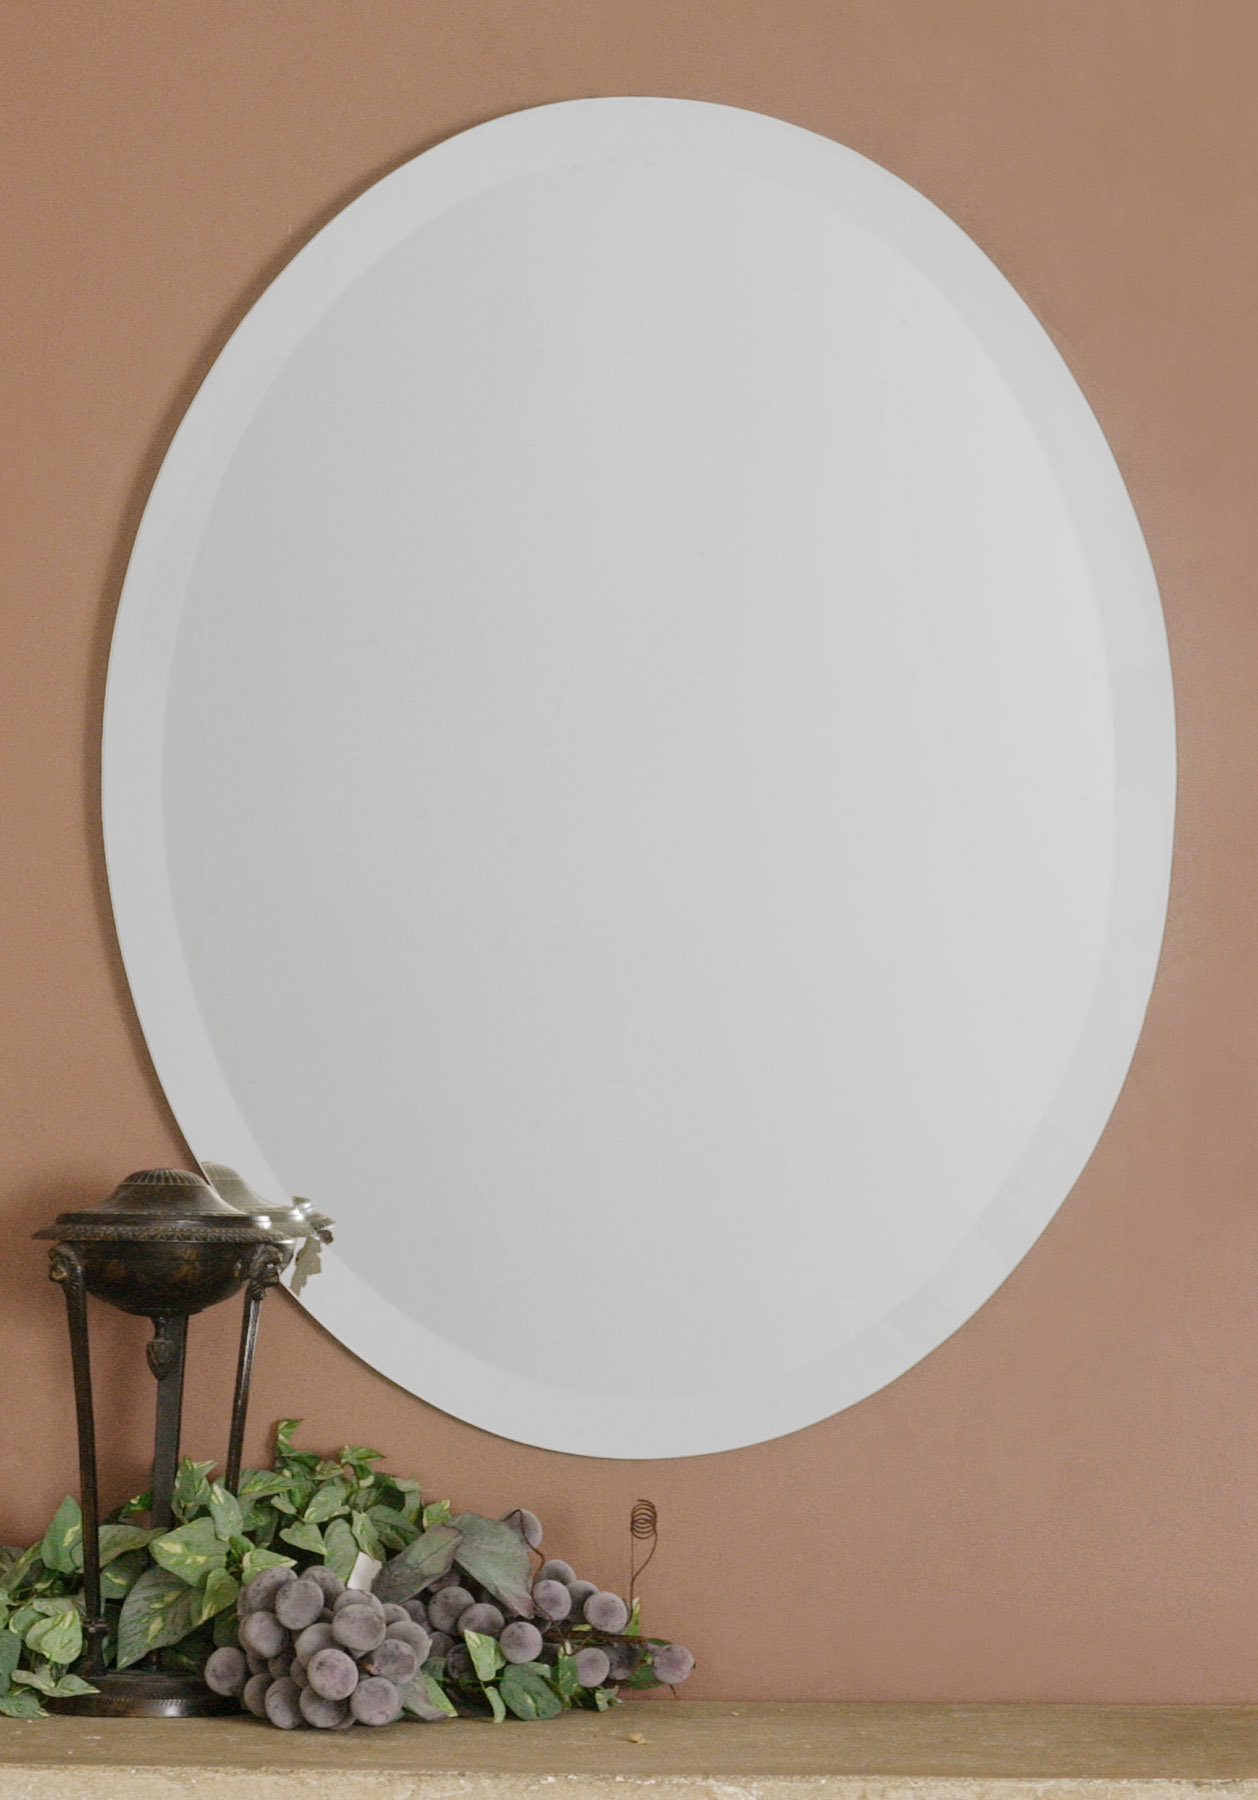 Farmhouse & Rustic Red Barrel Studio Wall & Accent Mirrors Pertaining To Hallas Wall Organizer Mirrors (Image 3 of 20)